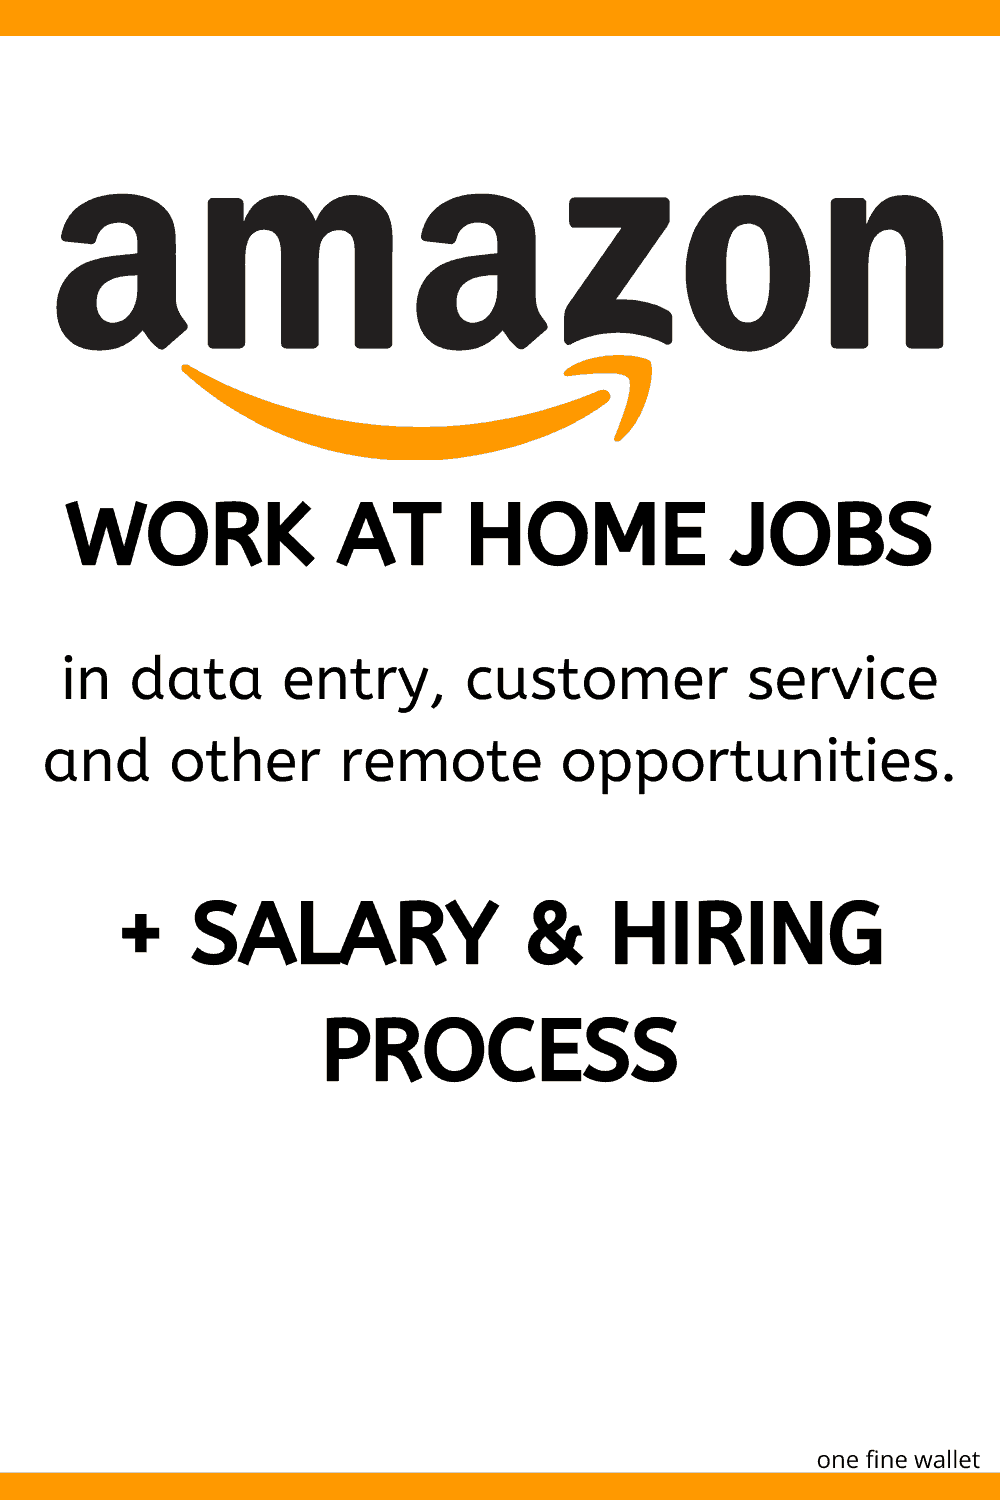 Amazon work from home jobs can give you the freedom to work from home with this big company. From data entry to customer service, there are many roles available.